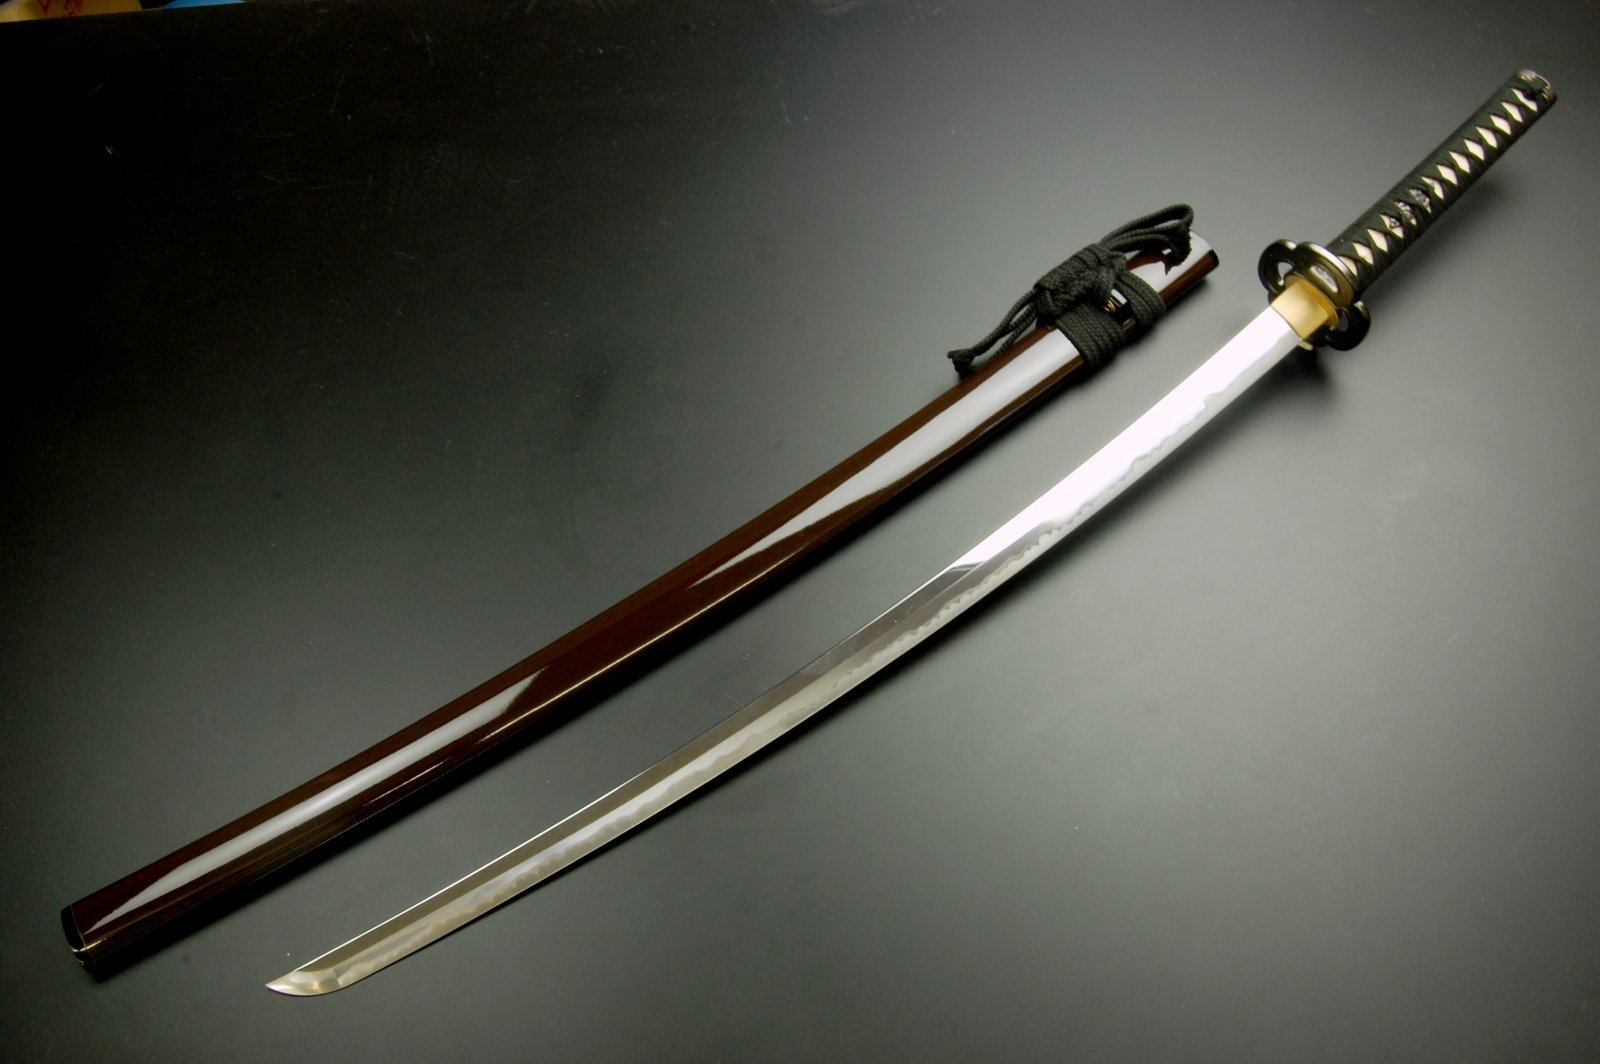 Katana with sheath